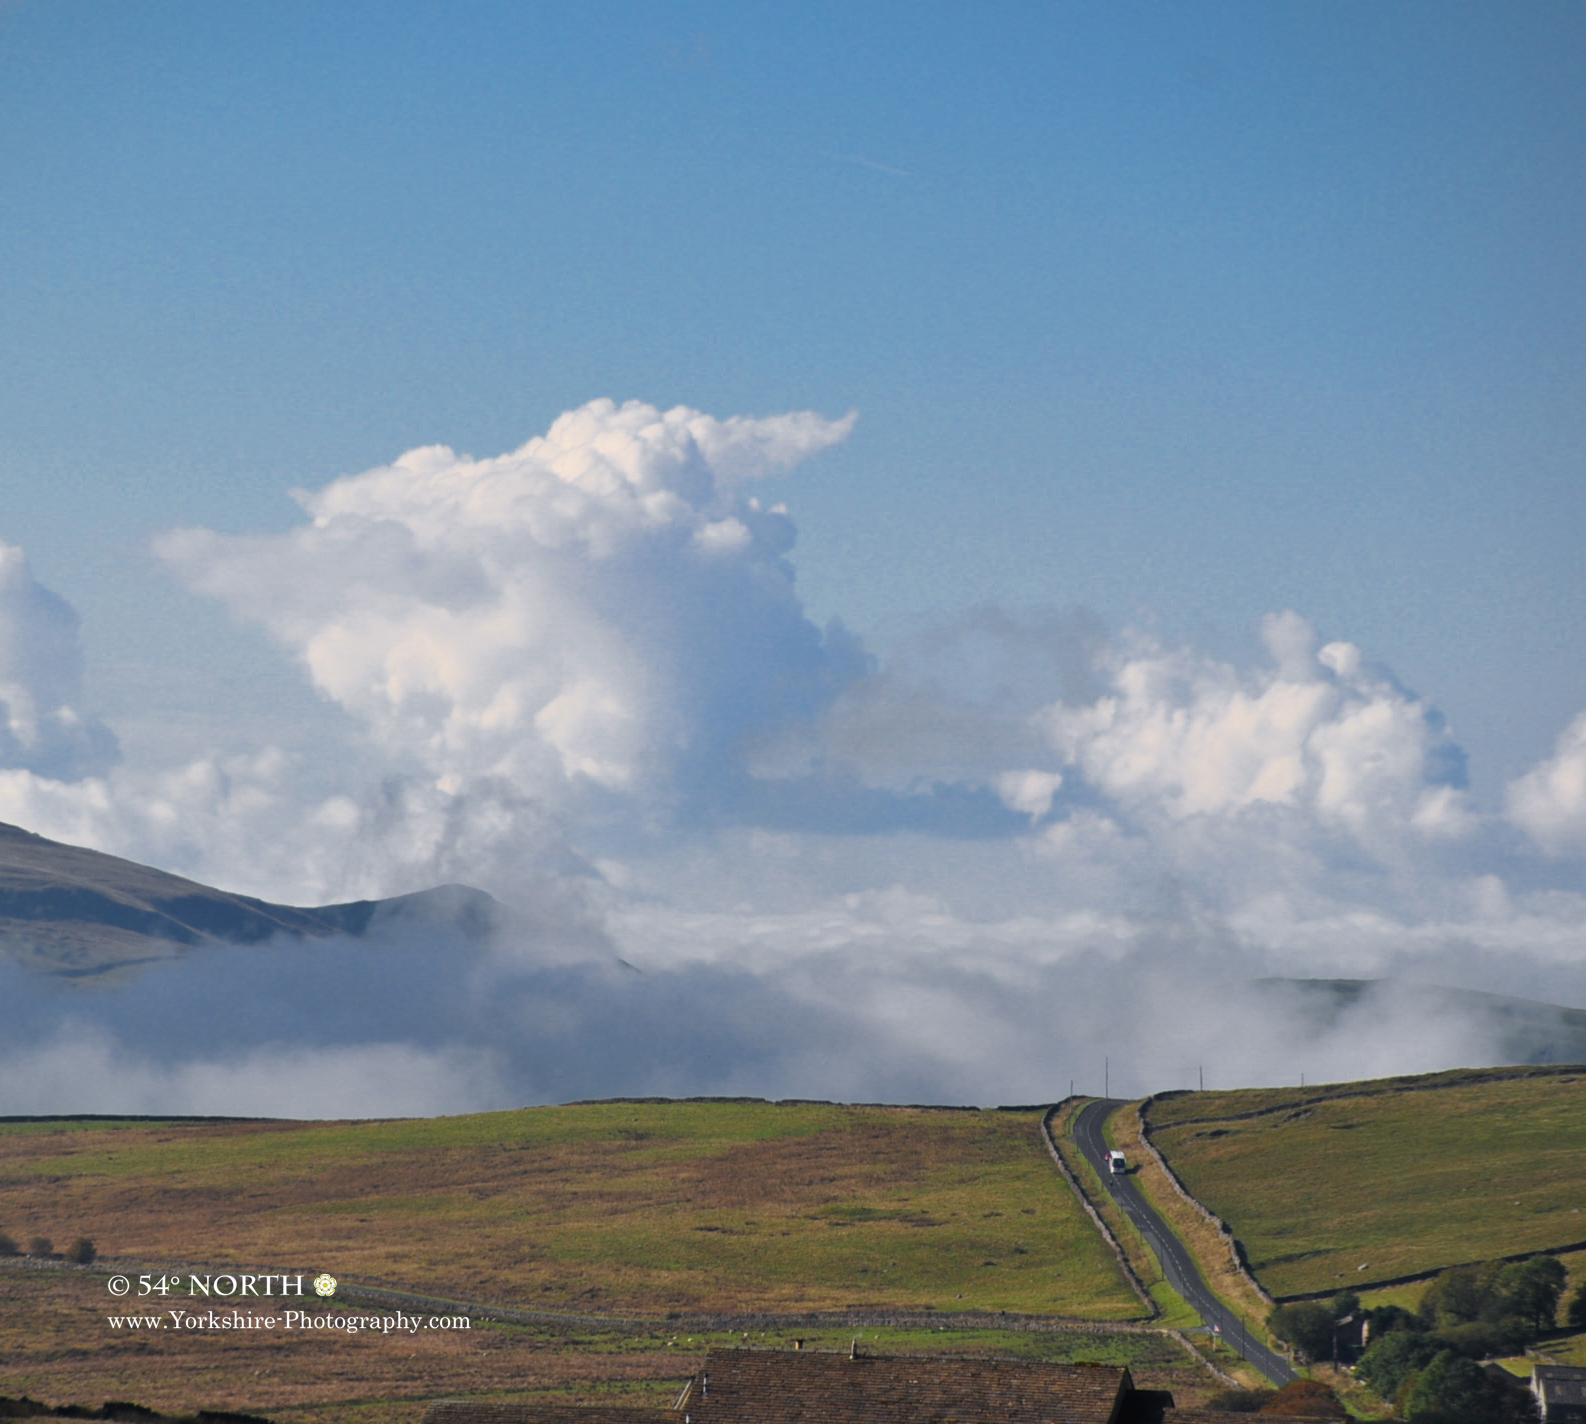 Cloud formation over the B6265 in Nidderdale